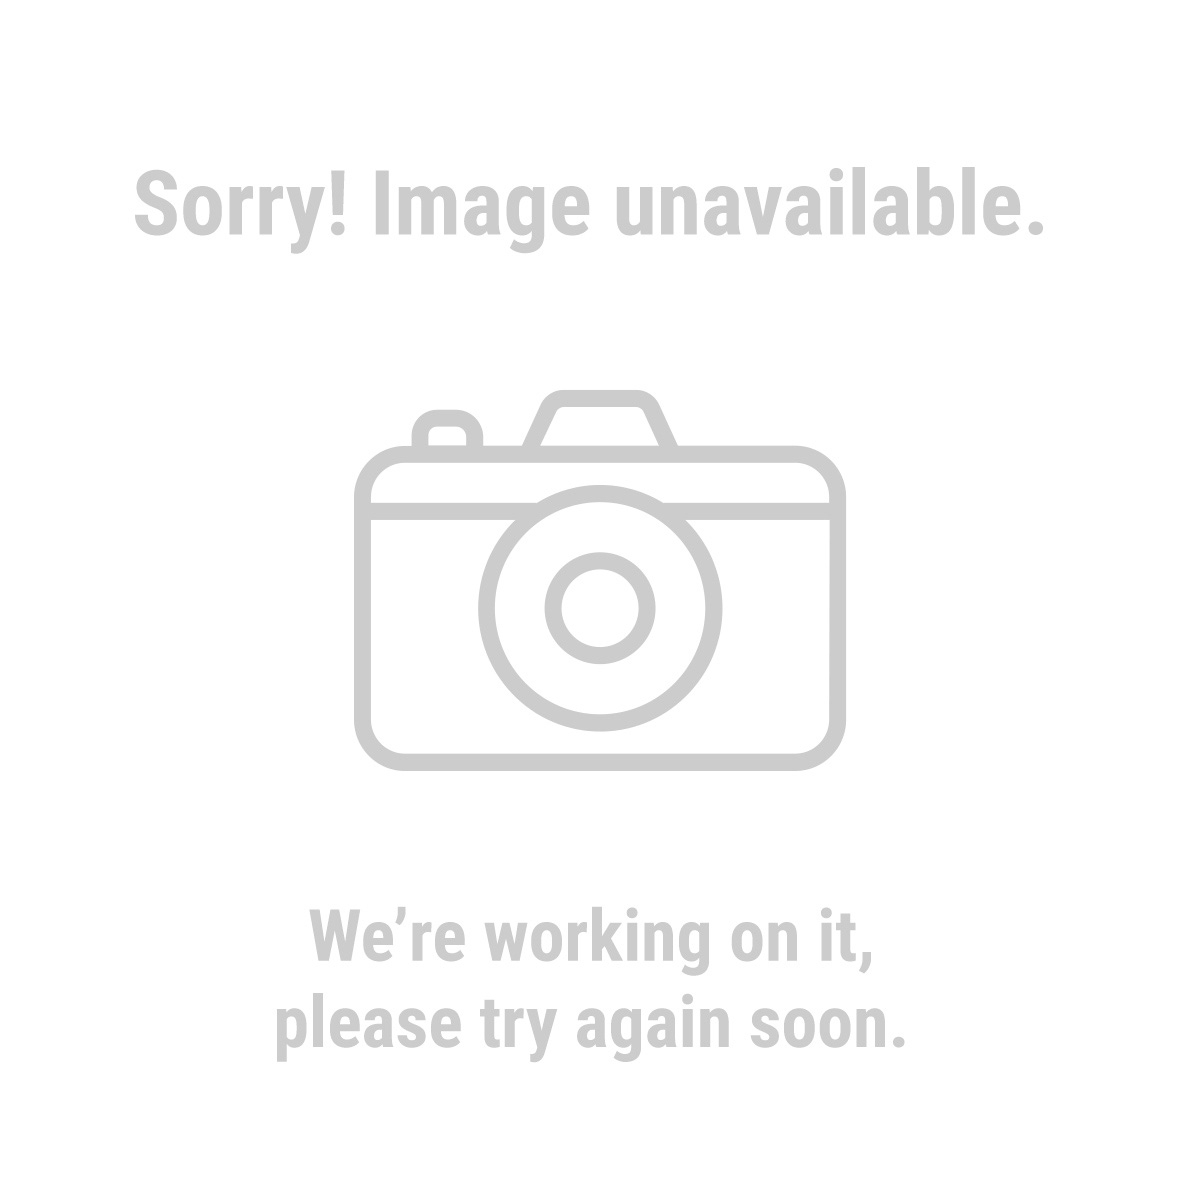 12 Oz Rust Oleum Gloss Black Acrylic Enamel Spray Paint